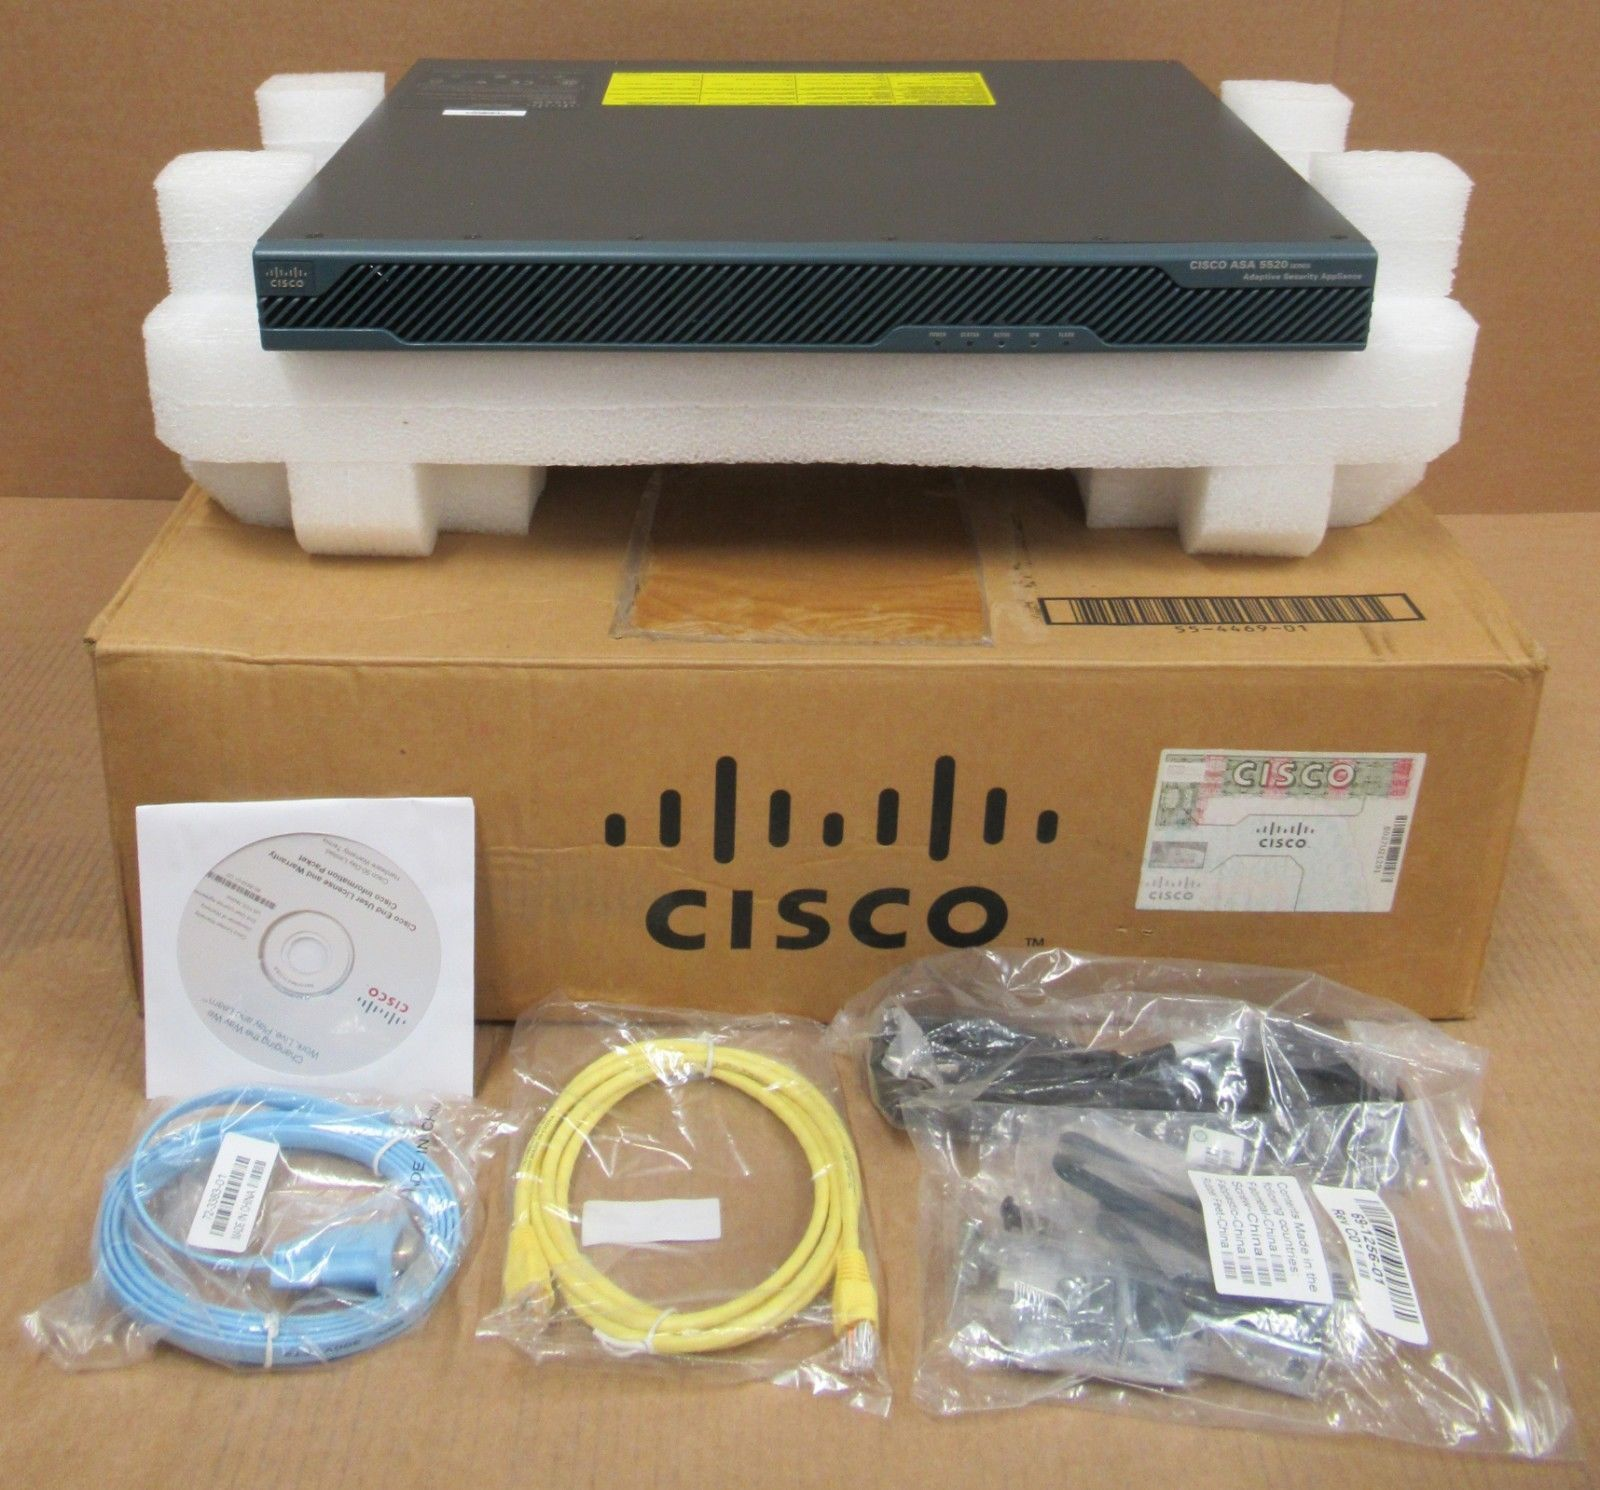 NEW Cisco ASA5520-K8 ASA5520 Adaptive Security Appliance VPN